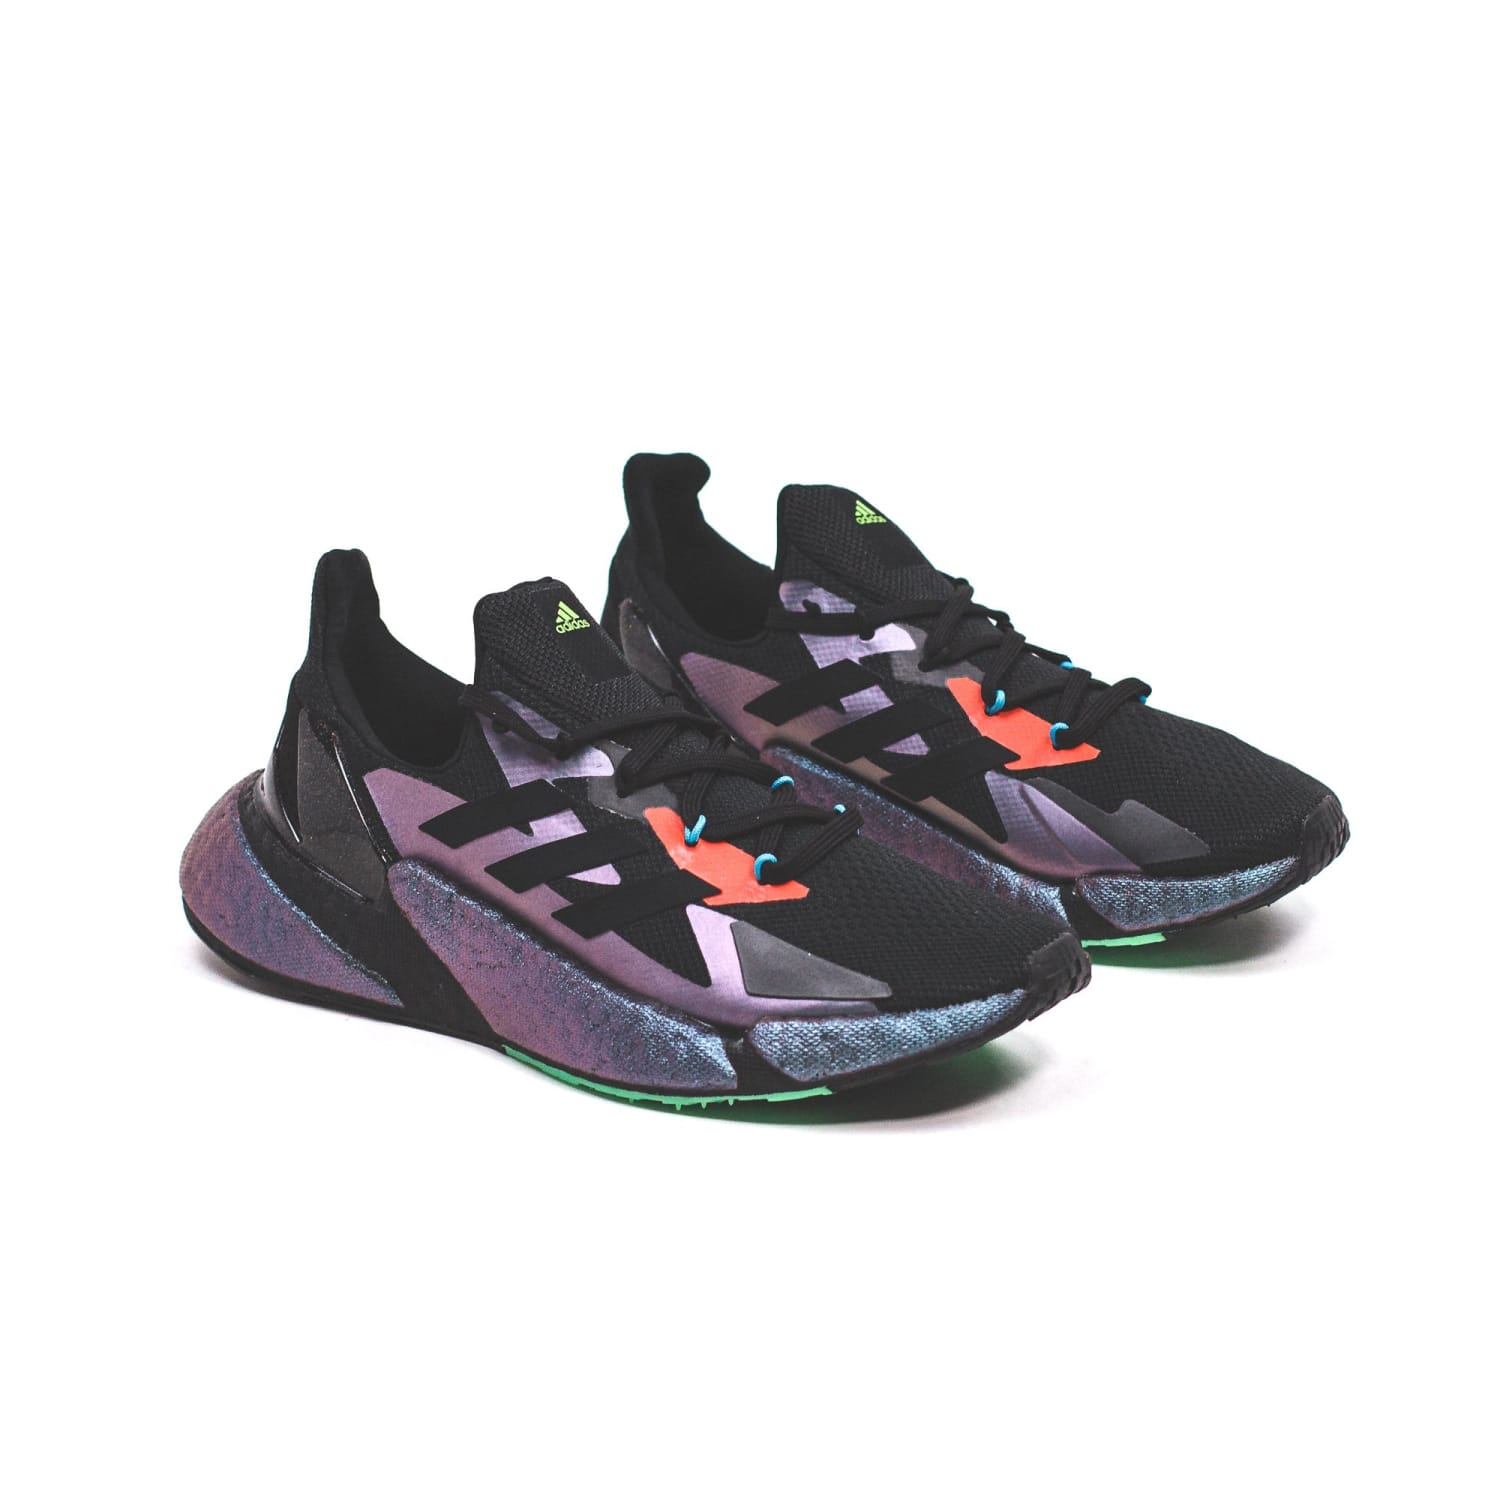 JUST IN: adidas X9000 Collection